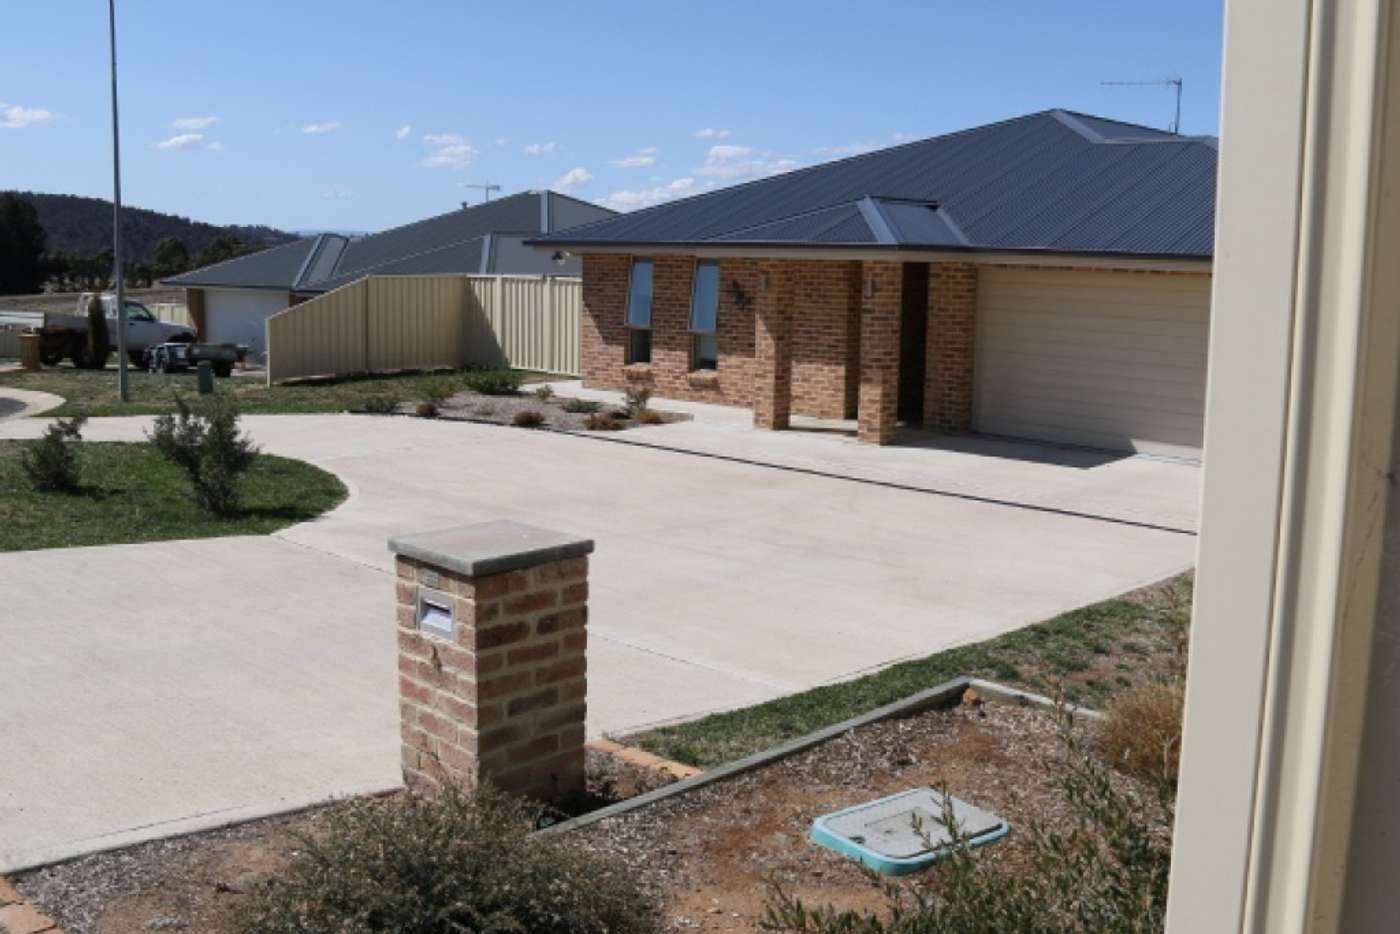 Main view of Homely house listing, 4 Poole Pl, Cooma NSW 2630